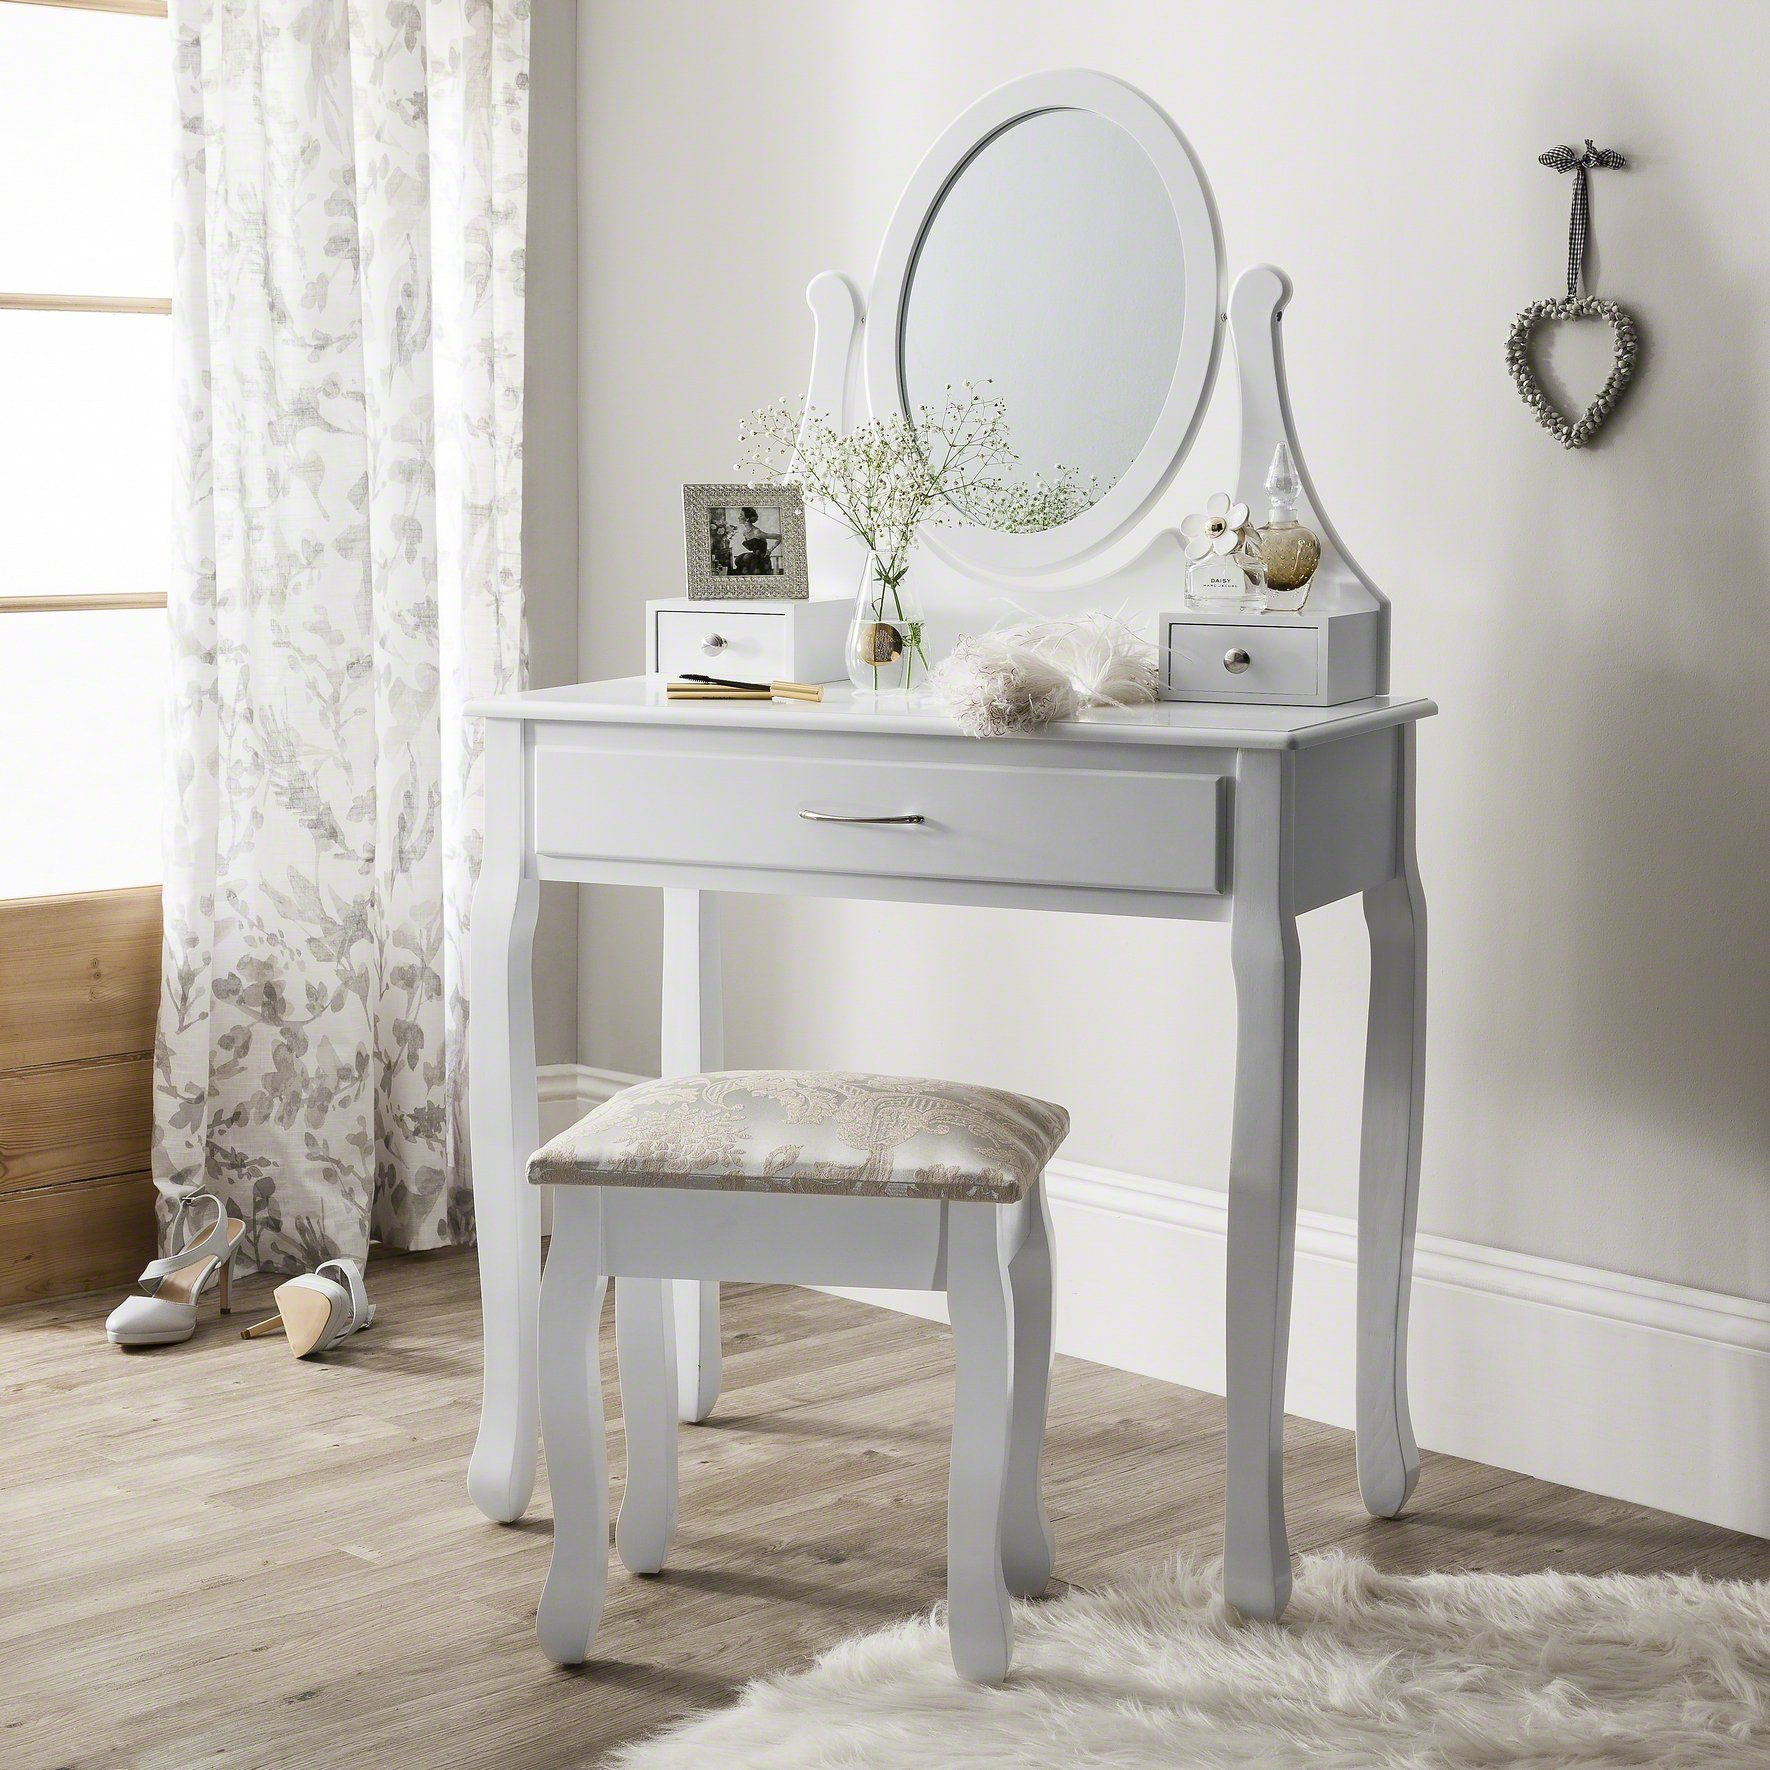 amalfi dressing table mirror stool set rh laura james co uk James and James Great Britain James and the Giant Peach